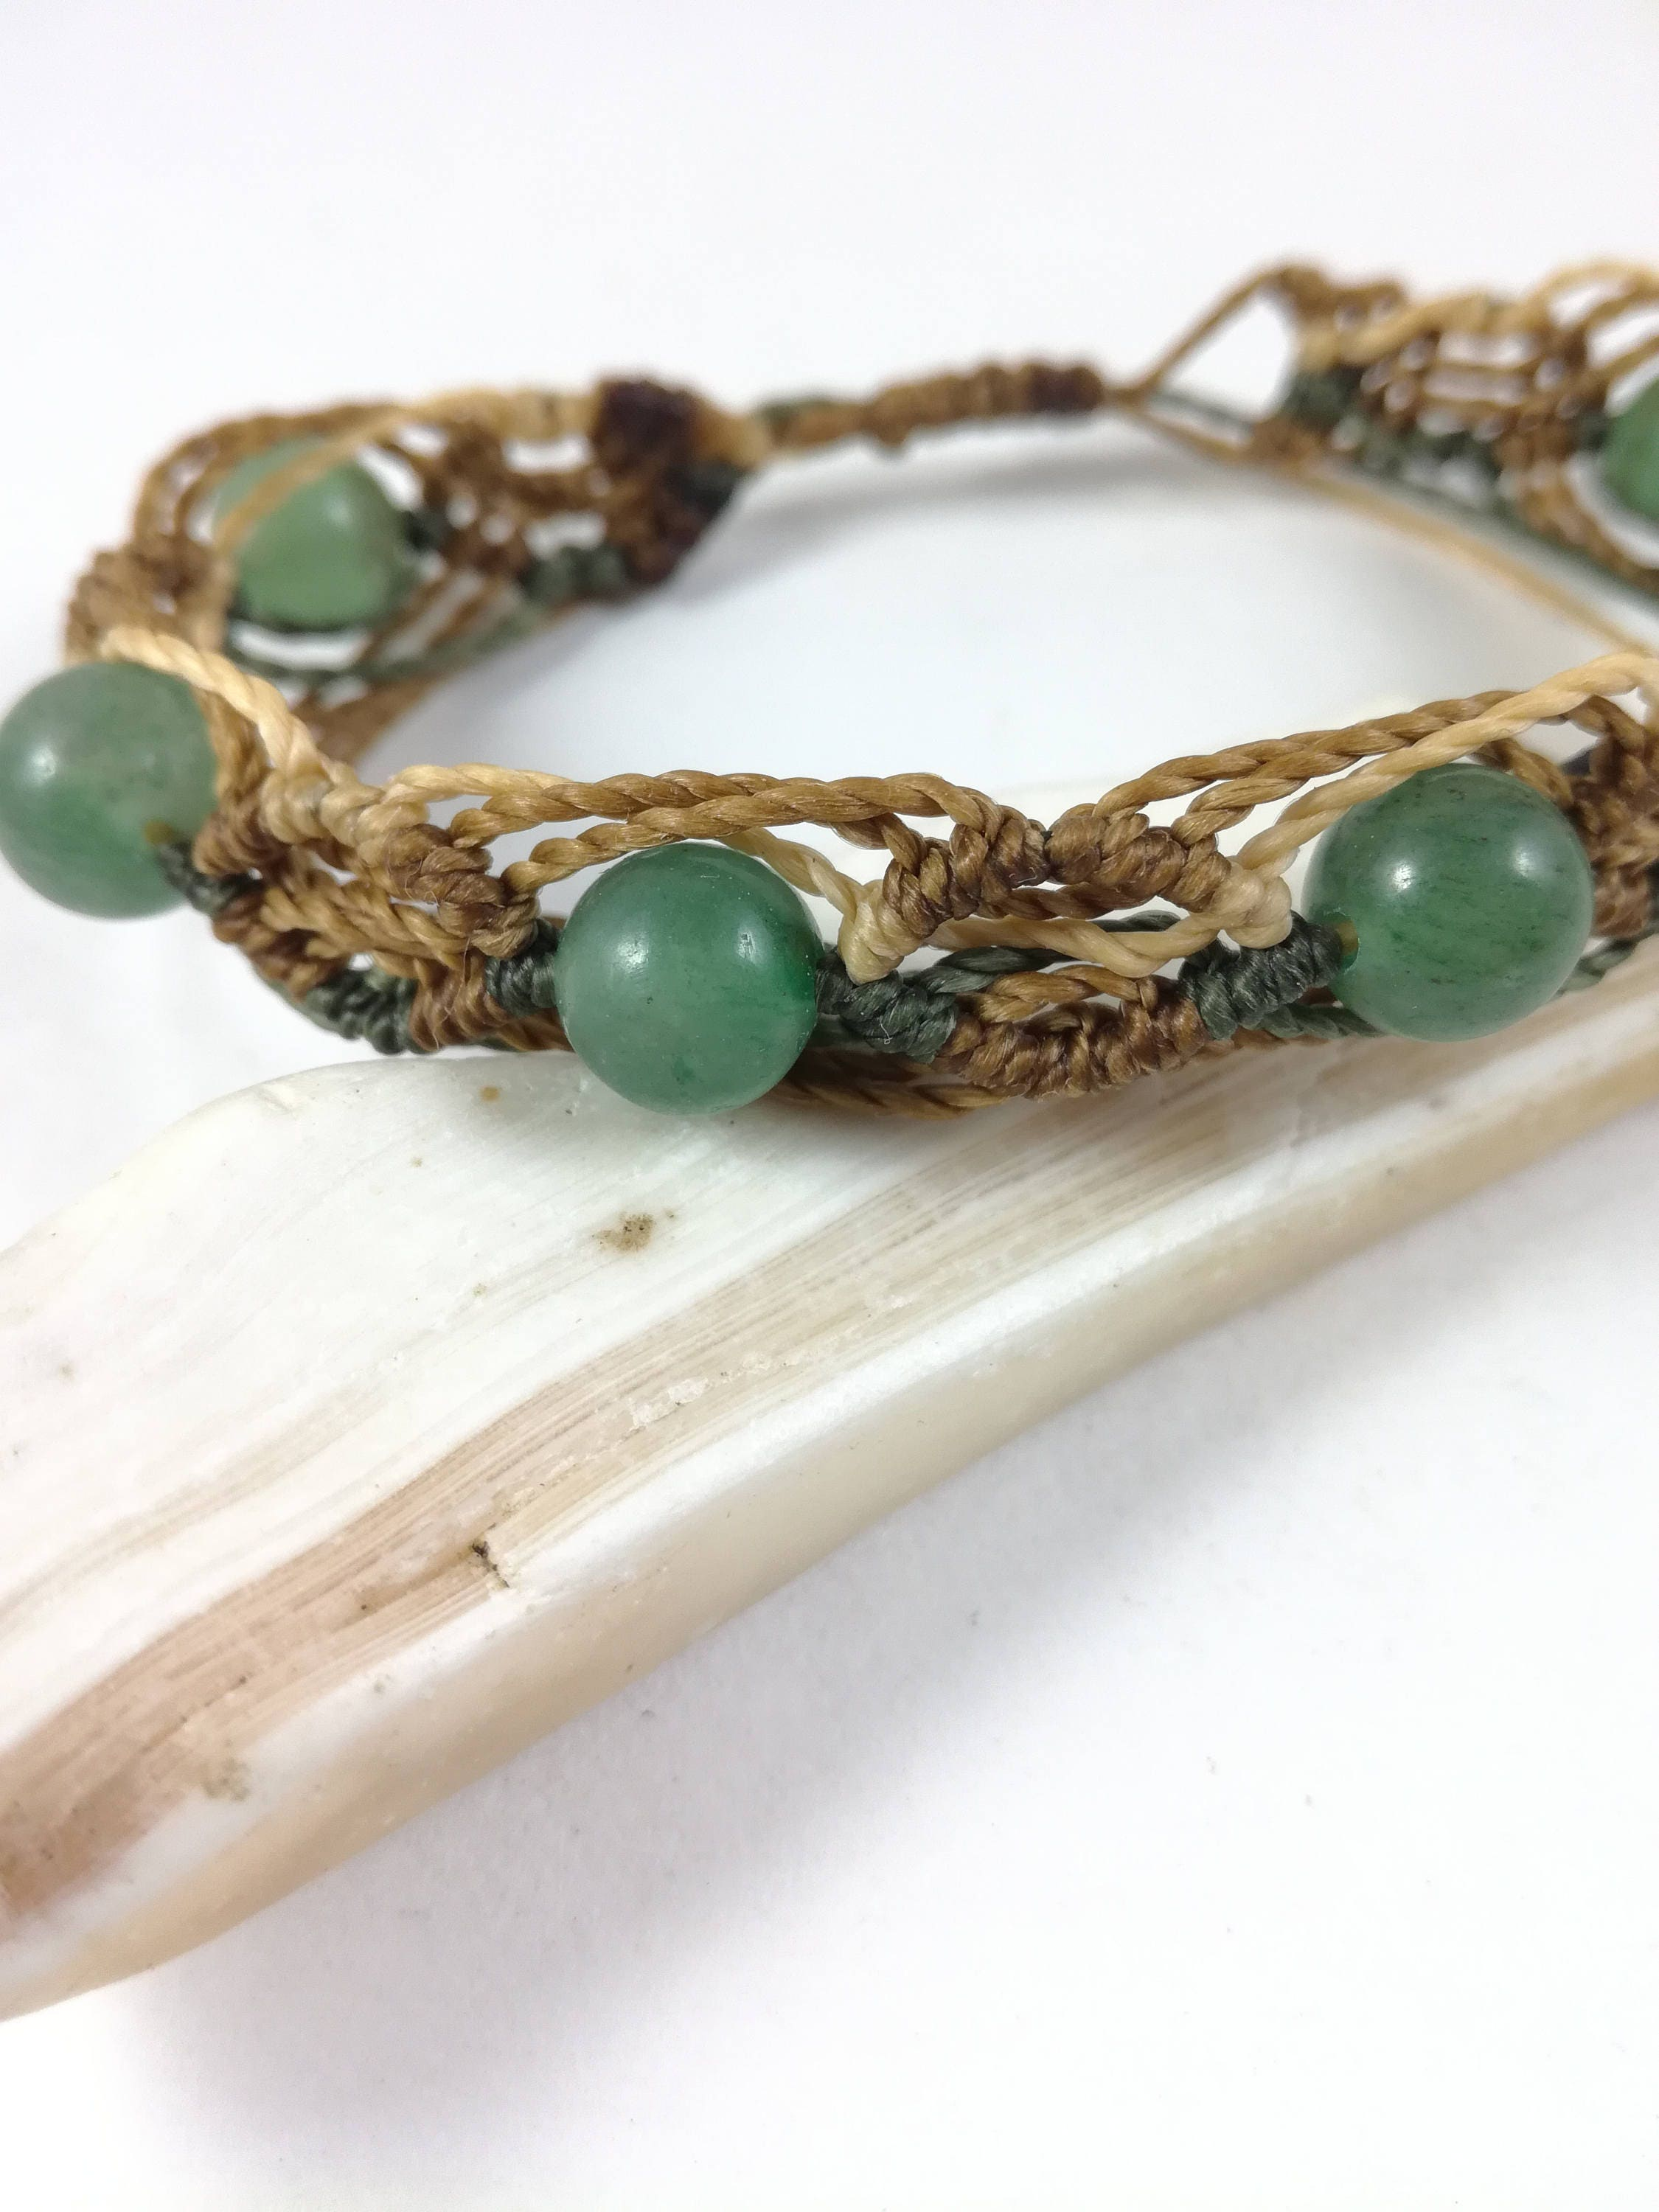 green marketplace stone types imports and guatemala seed bead bracelet alternatives lucias chunky global collections